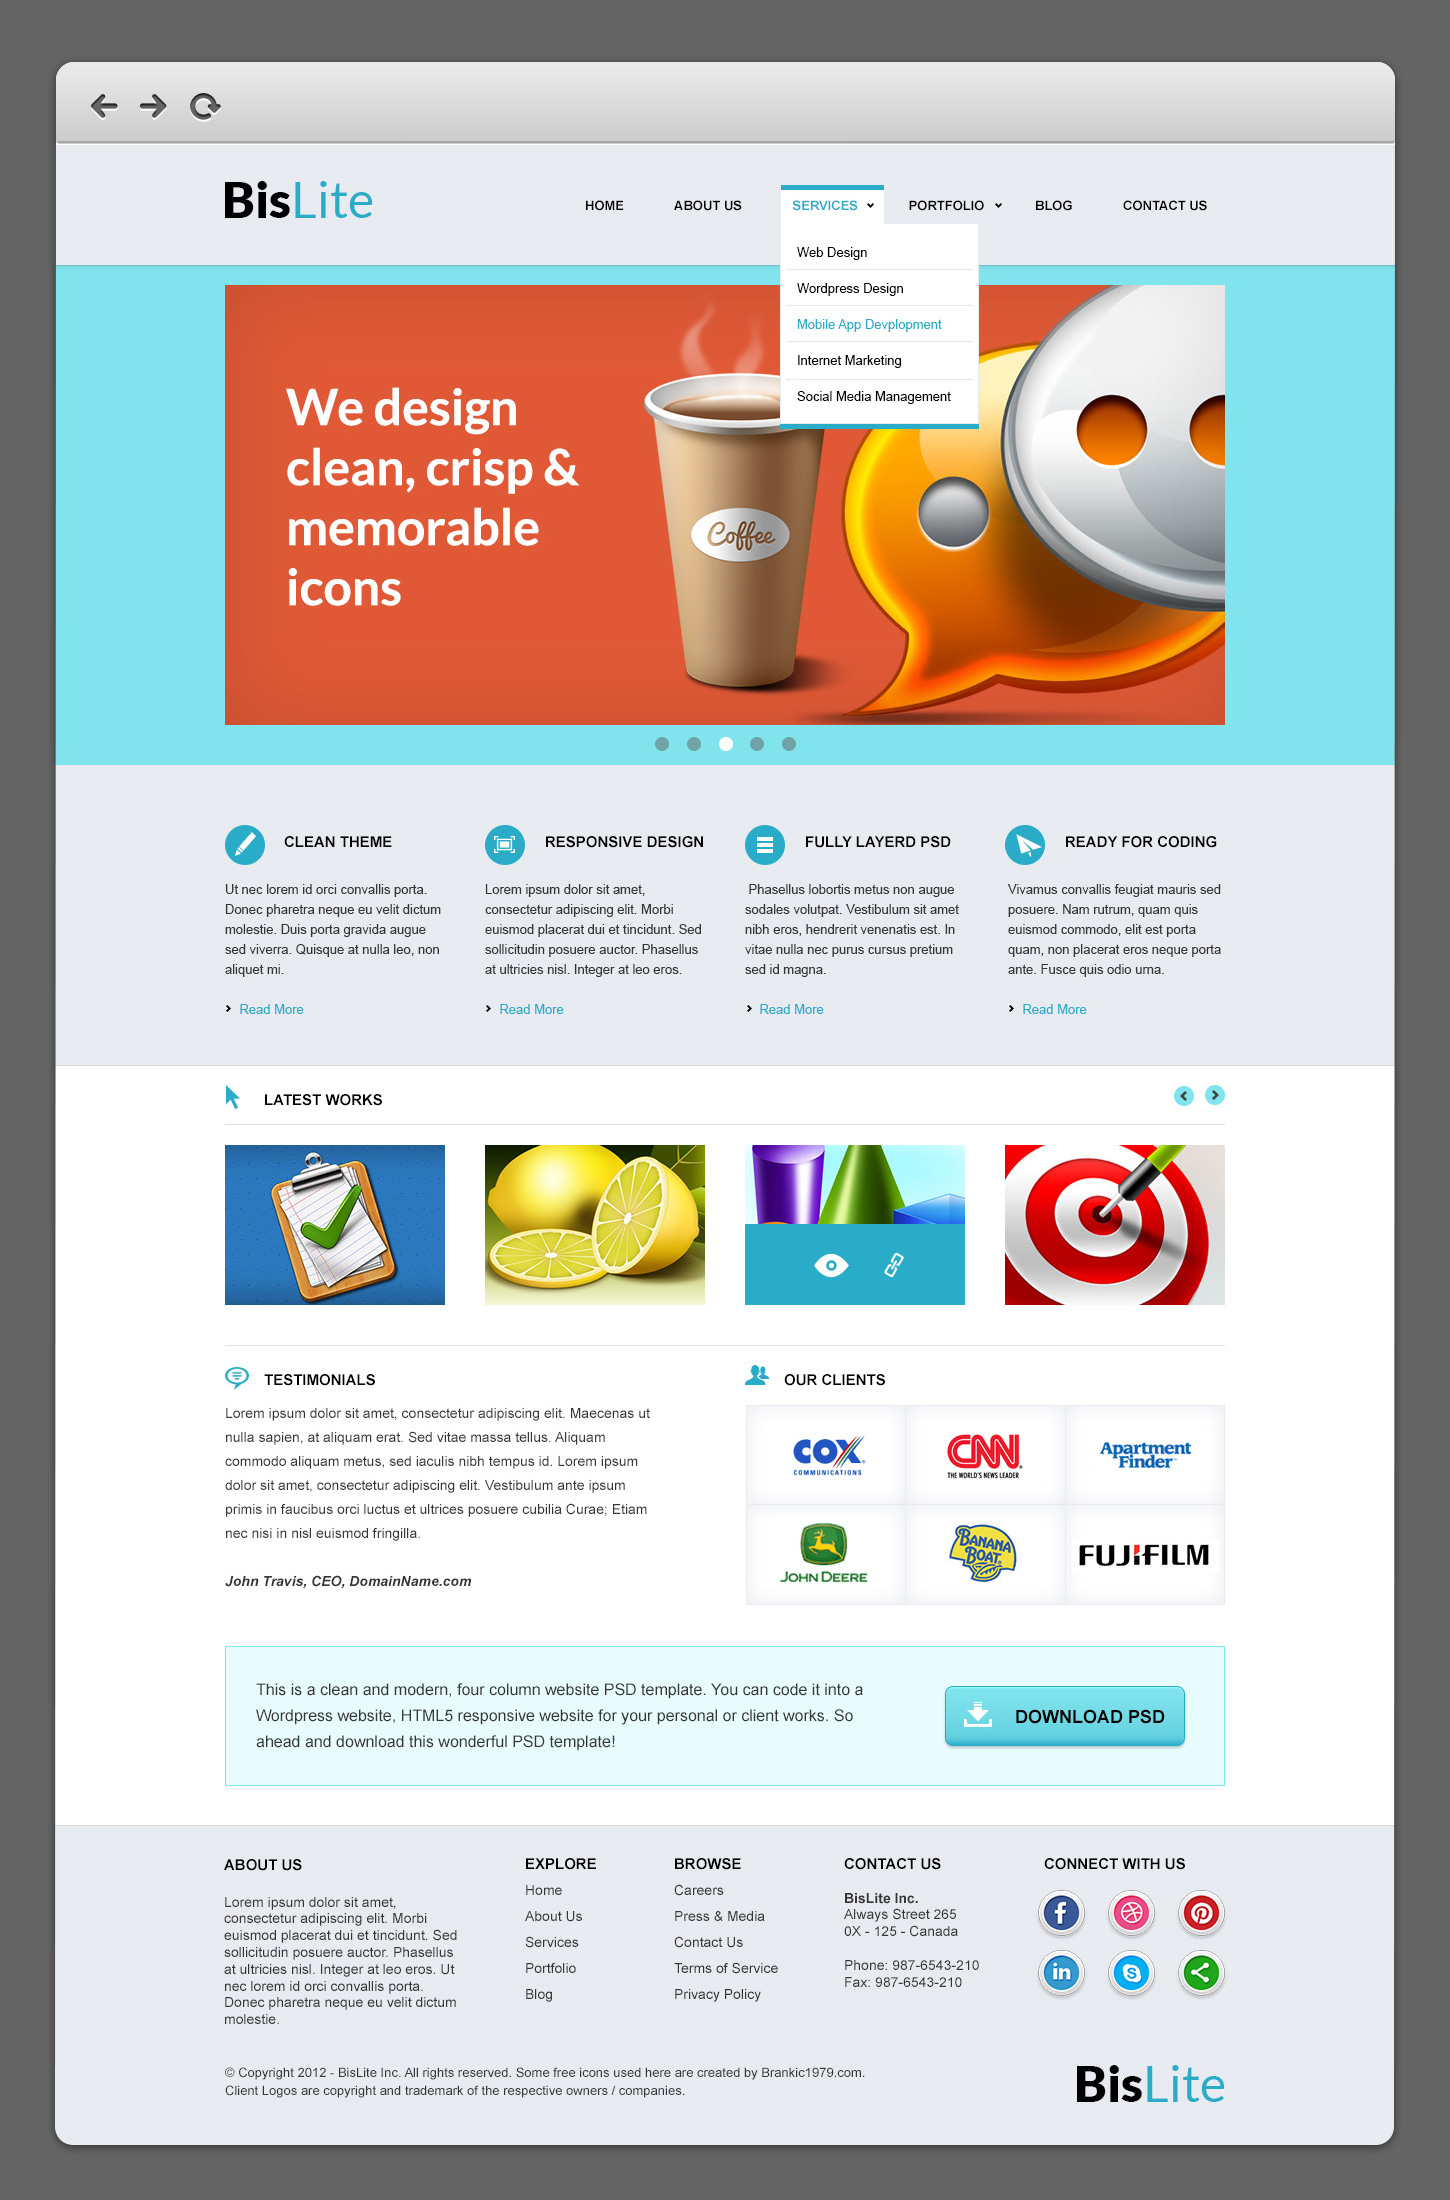 Bislite business website psd templates graphicsfuel for Websites to design houses for free